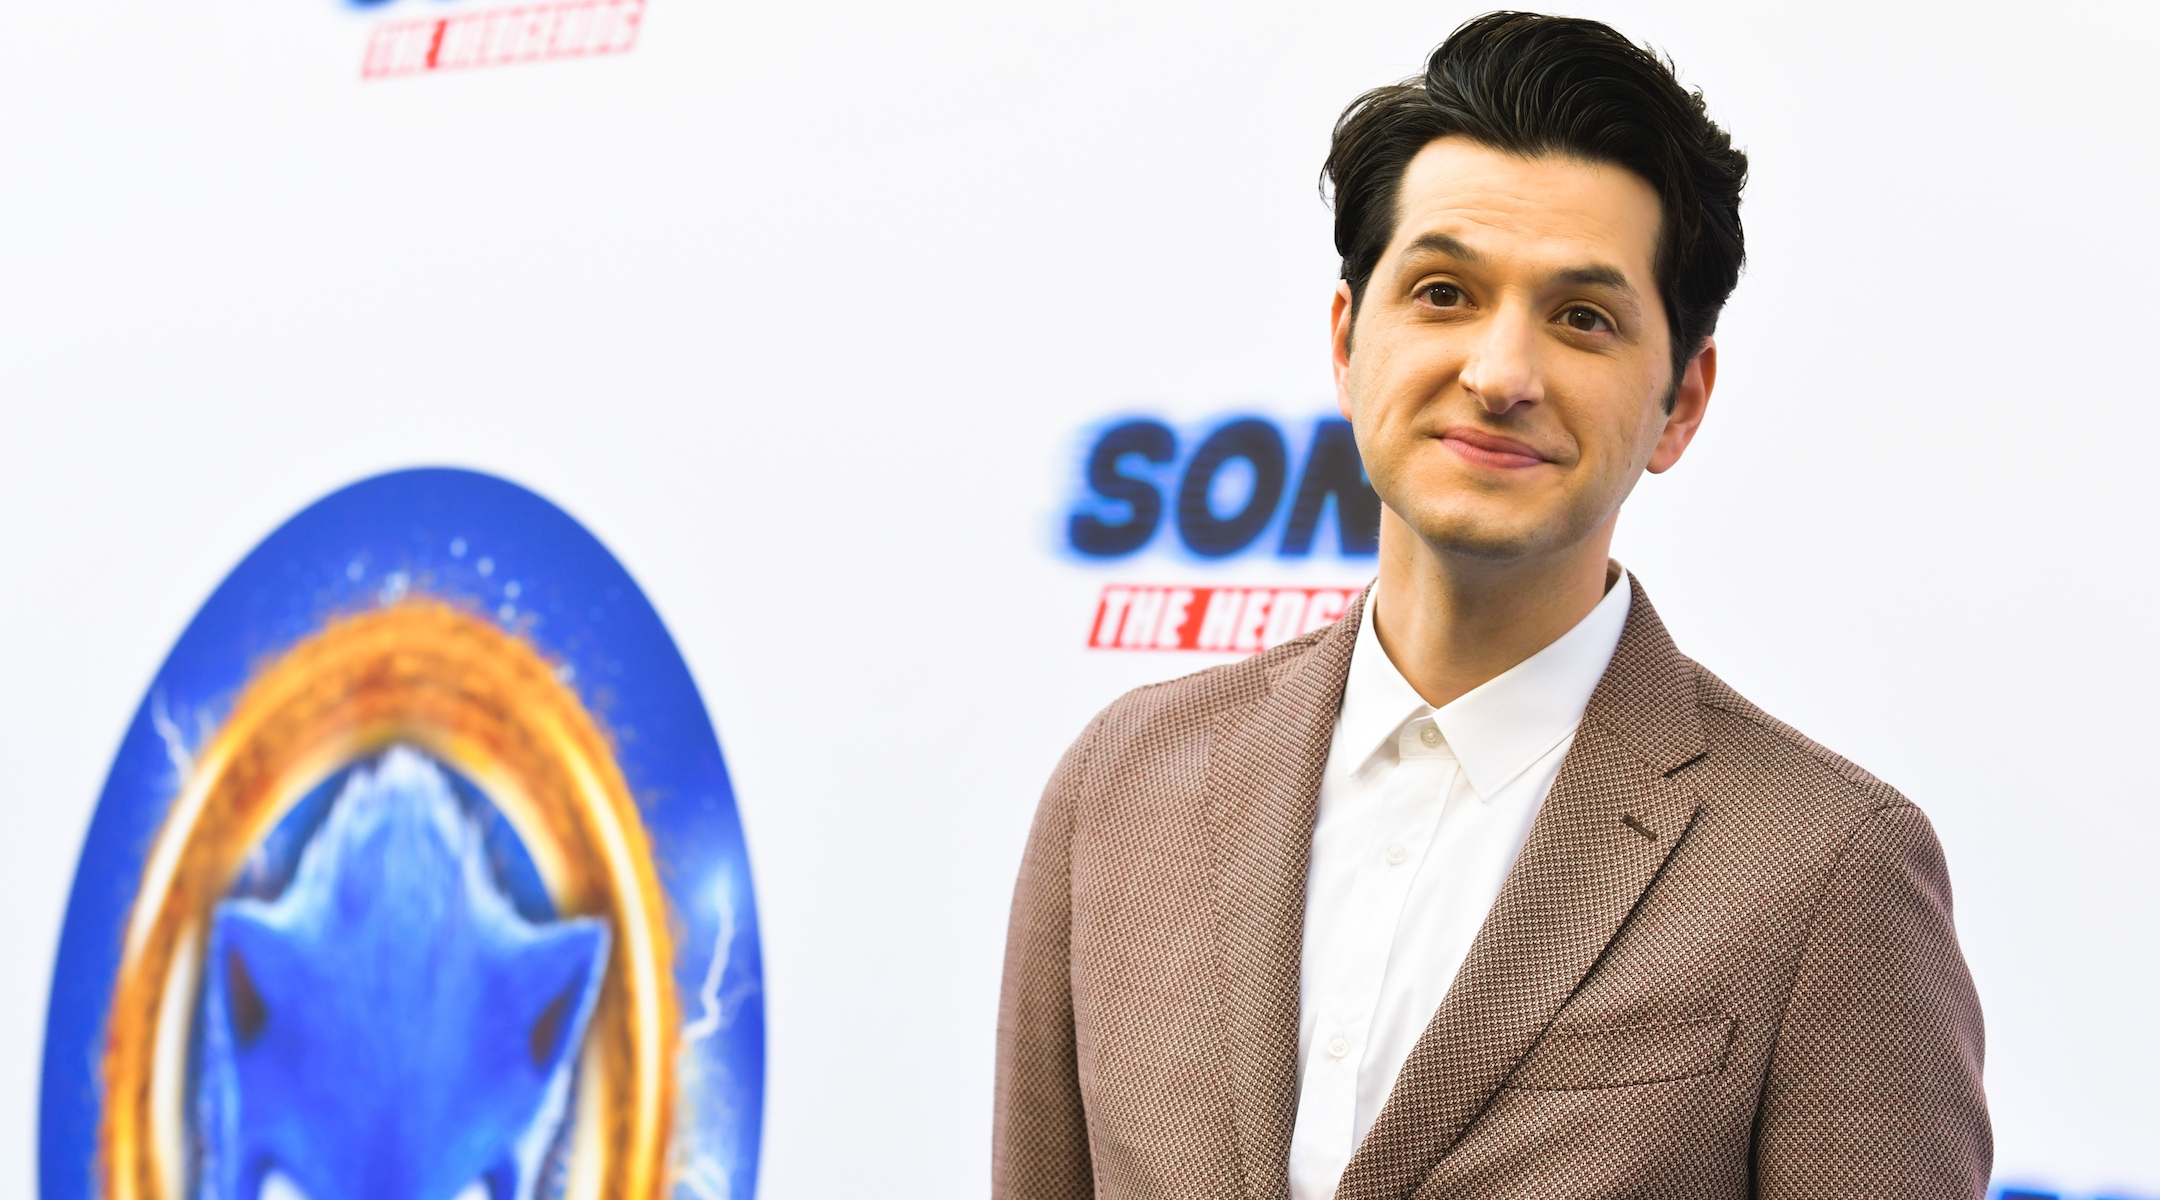 """Ben Schwartz at a """"Sonic: The Hedgehog"""" event in Hollywood, Calif., Jan. 25, 2020. (Rodin Eckenroth/Getty Images)"""